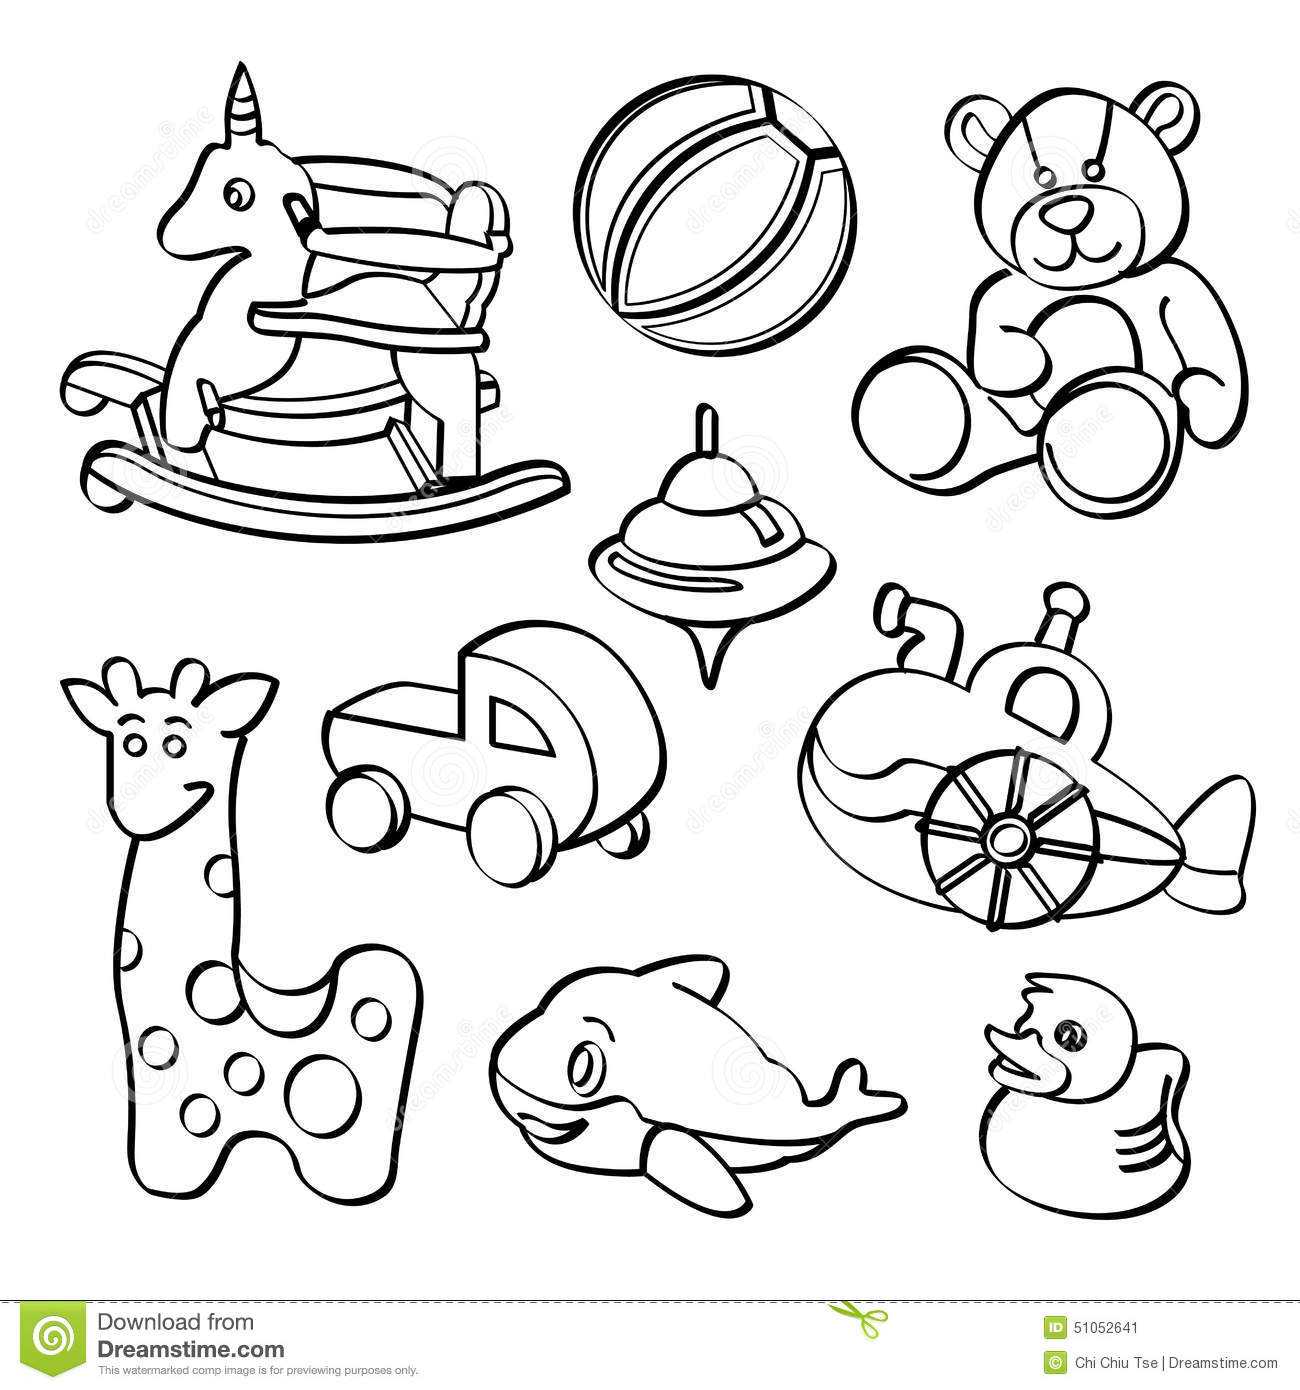 B01MYSJUJU besides Id Card Line Drawing Illustration Animation Trasnparent Background Bx0ydwdwgiviywd2o moreover Royalty Free Stock Photos F1 Car Outlined Image9221258 as well Stock Photos Car Maintenance Repair Icons Image26362603 furthermore Arctic 20monkeys 20stickers. on car audio art